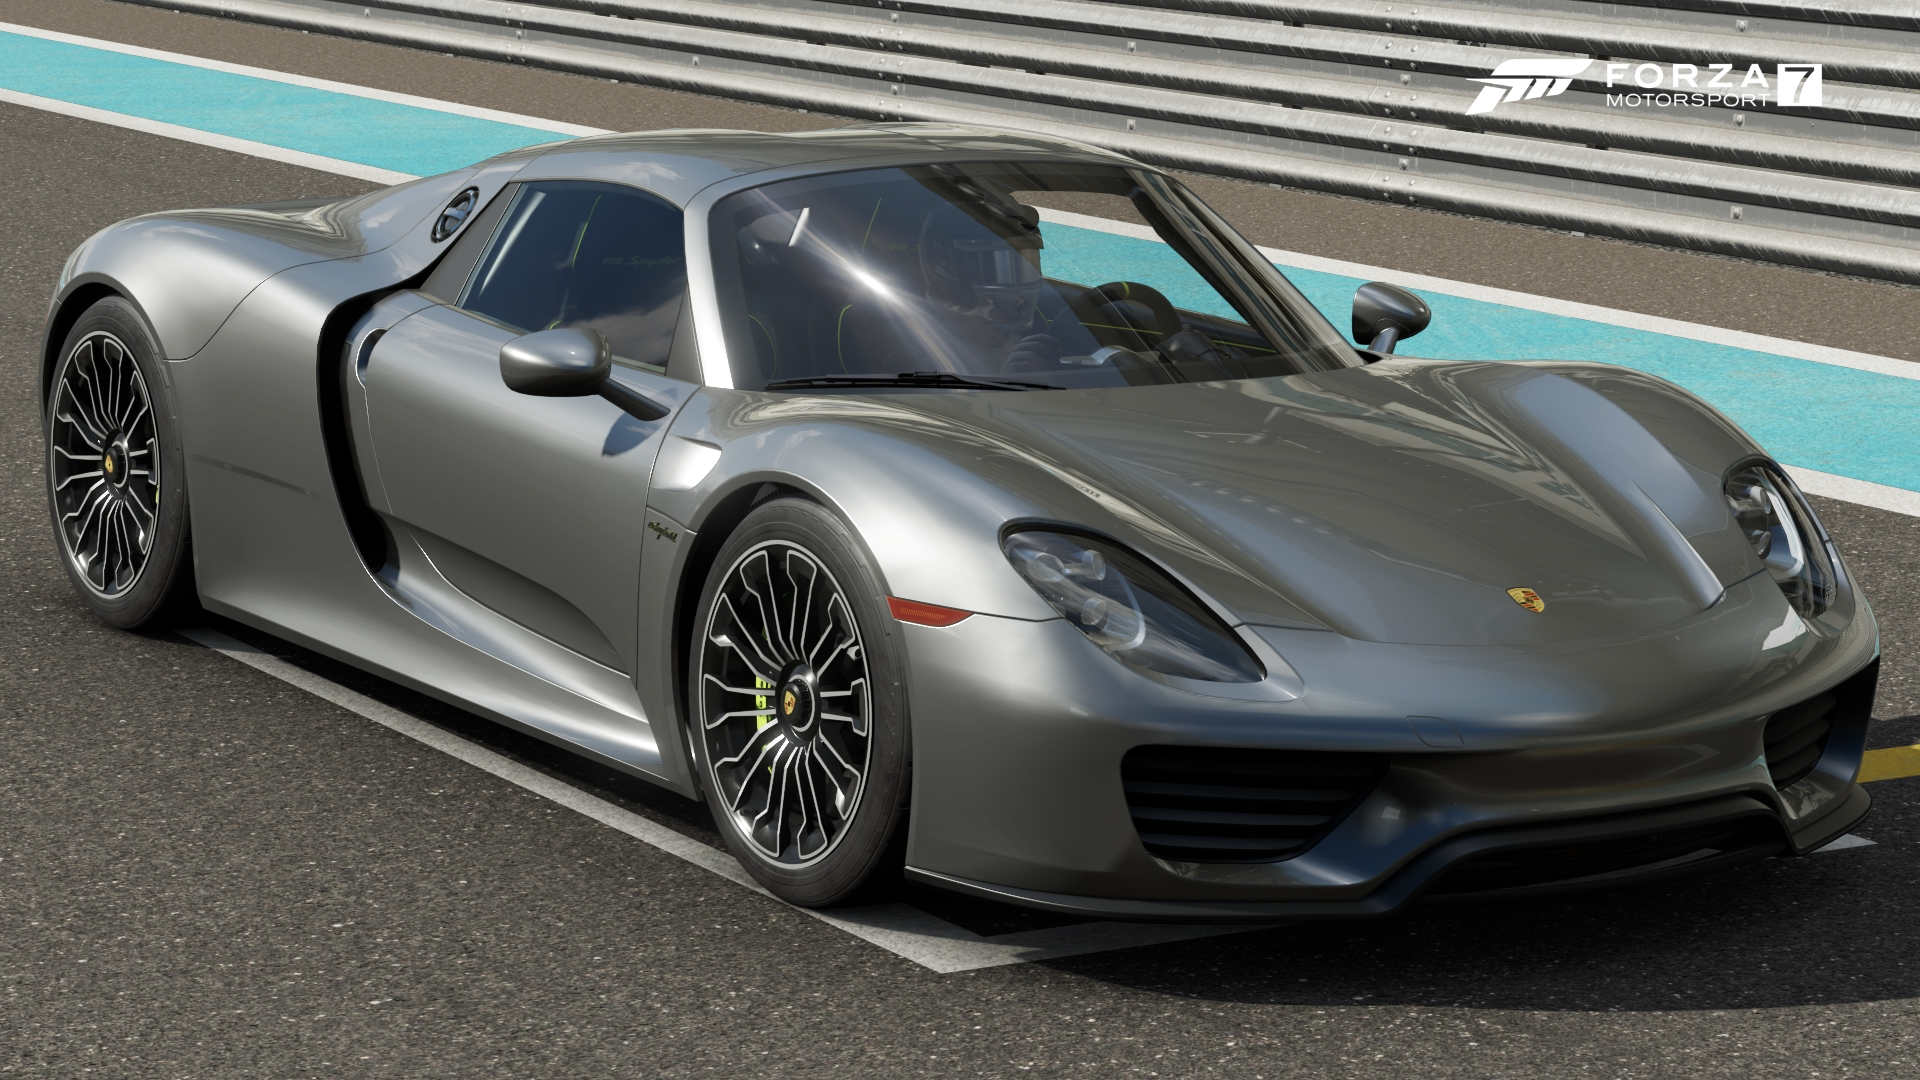 The 2014 Porsche 918 Spyder In Forza Motorsport 7